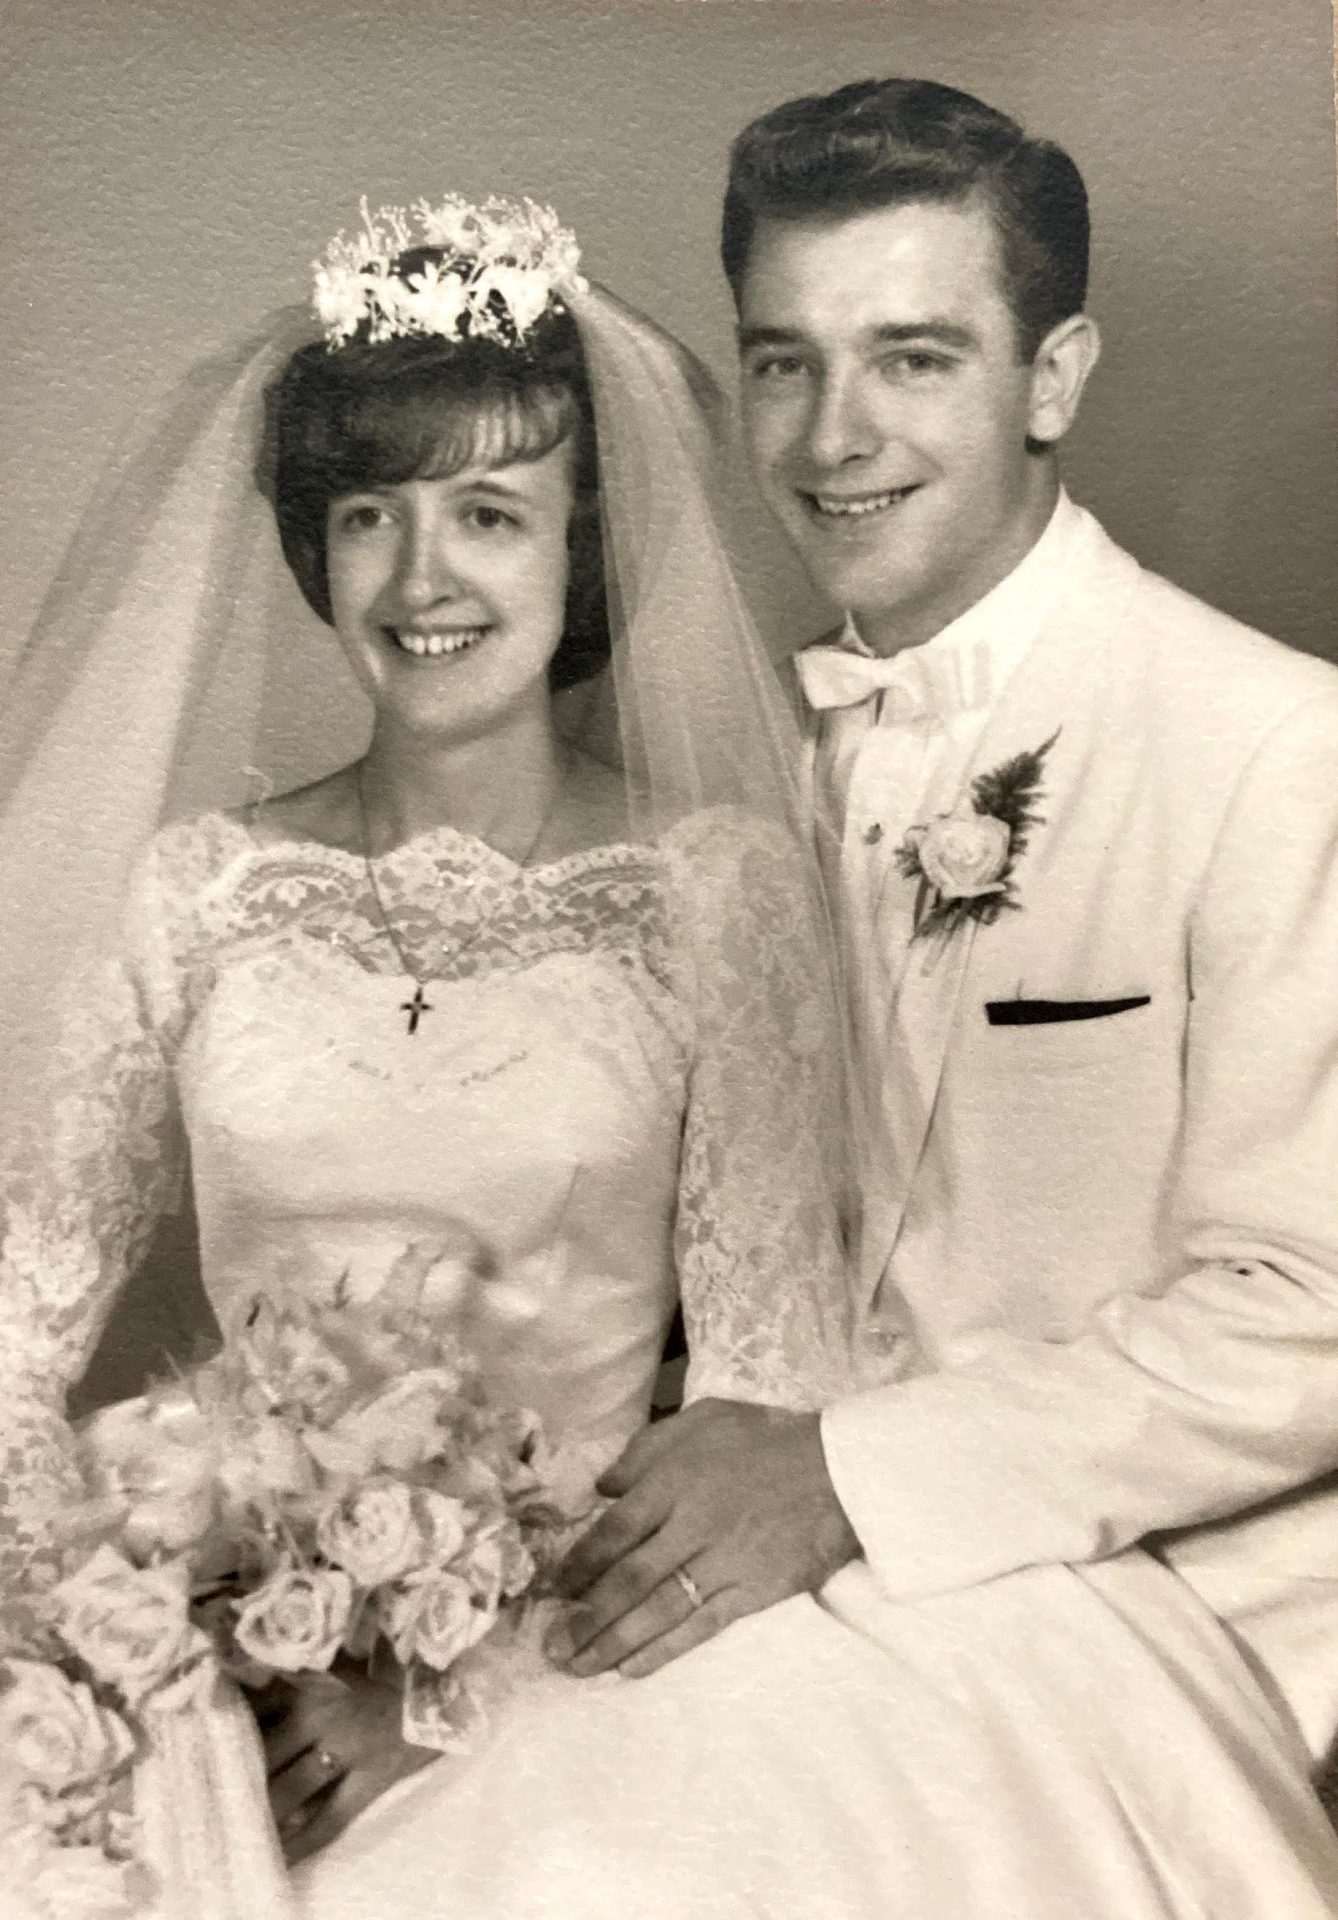 Charlotte and Dennis Leach - Married April 16, 1966.